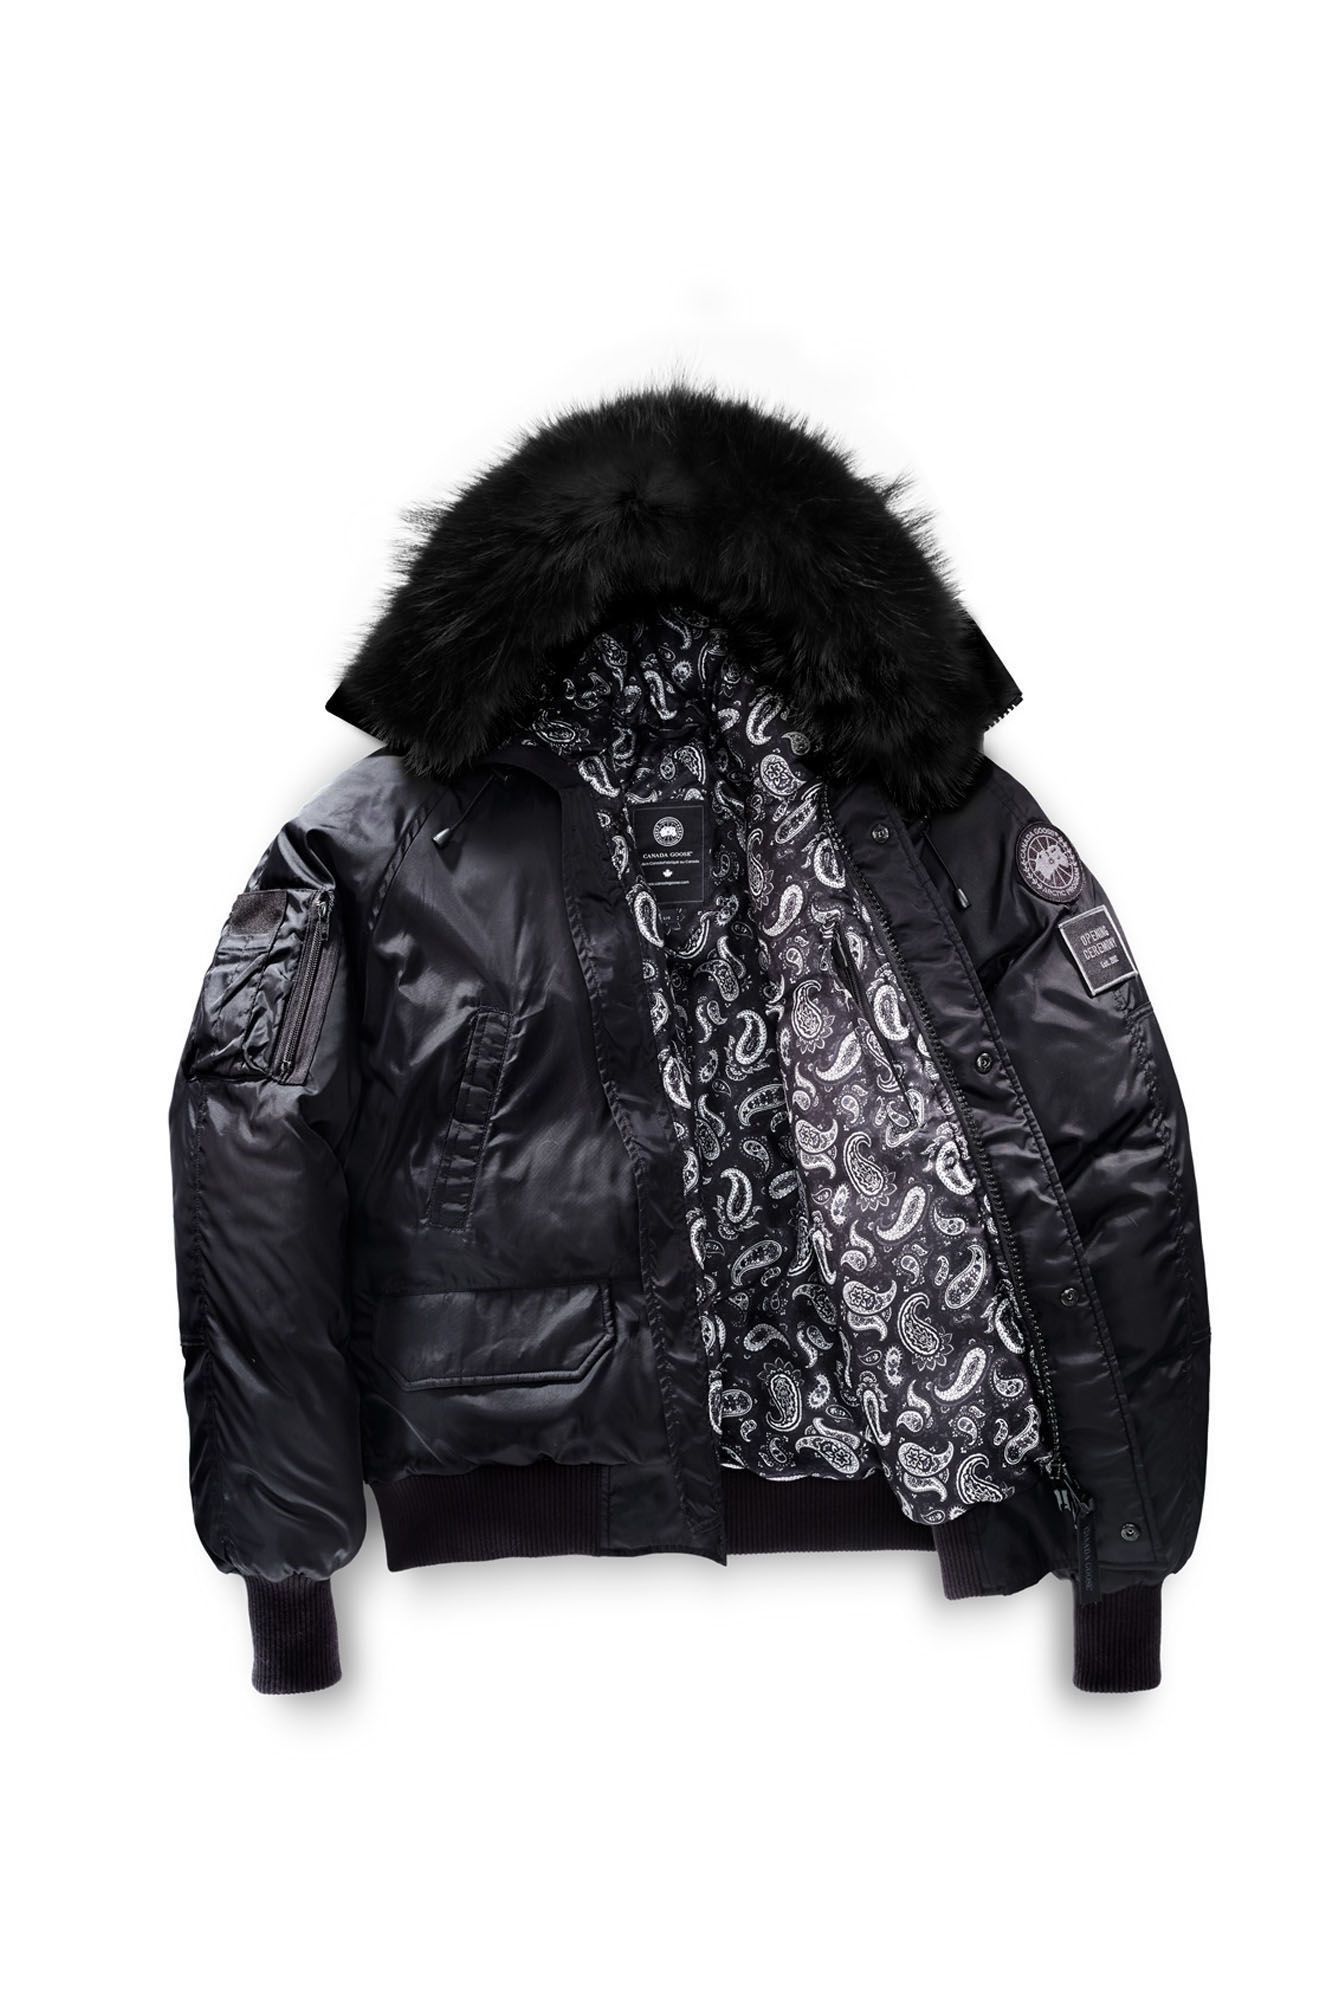 47bf24b4fb7e Pin by Doris Perry on Fashion Cloth in 2018   Pinterest   Opening ceremony,  Jackets and Winter jackets